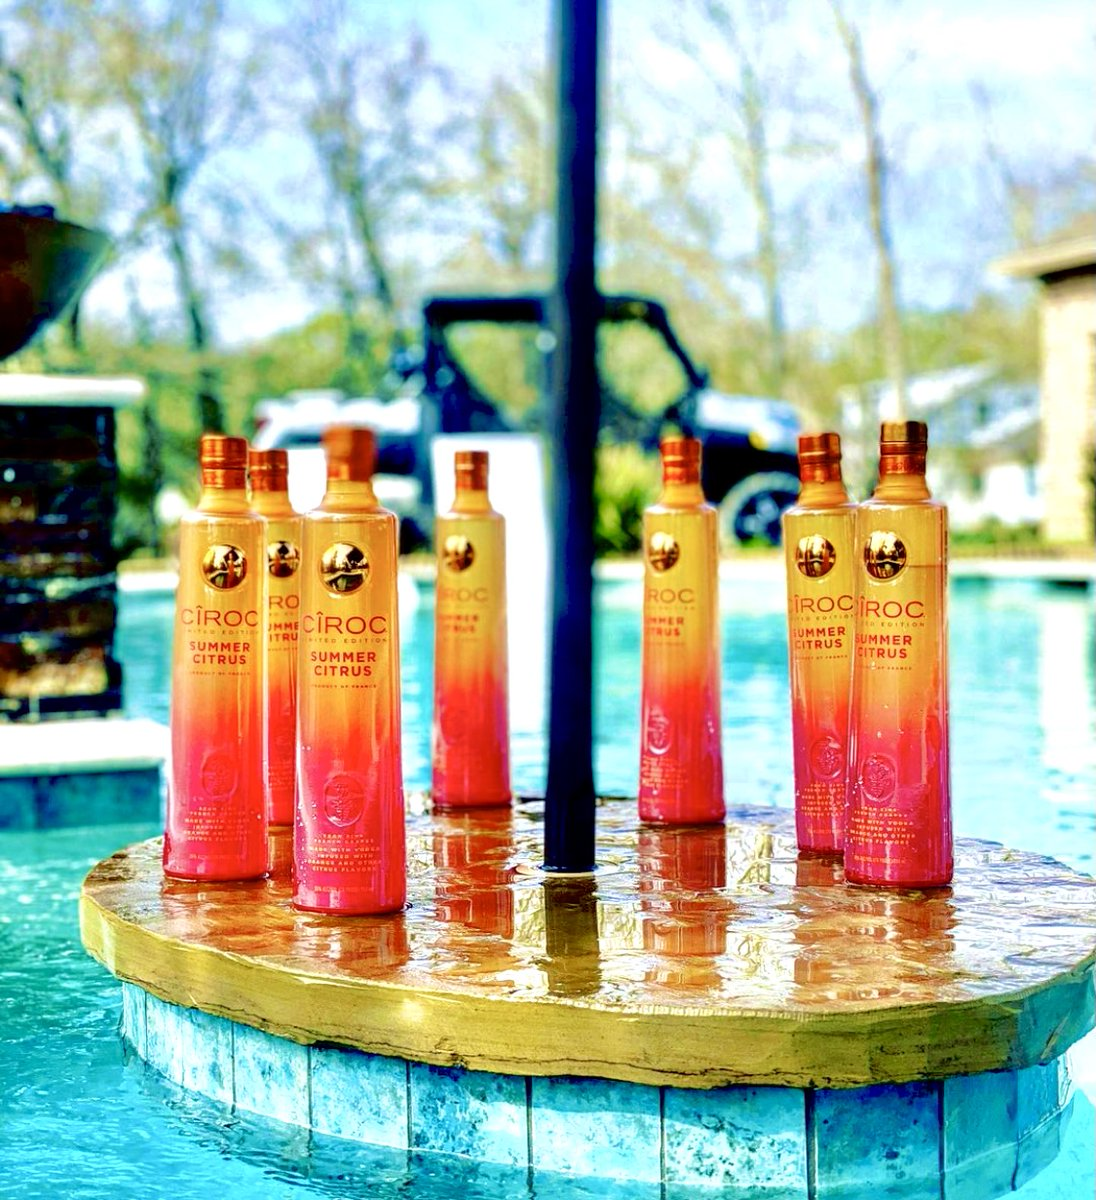 The CIROC Summer Citrus Vodka is masterfully infused with a distinctive blend of orange and other citrus flavors resulting in a taste experience that is lusciously different and elegantly smooth. Pre-Order now  at Liquor Stars!   #ciroc #summercitrus #diddy